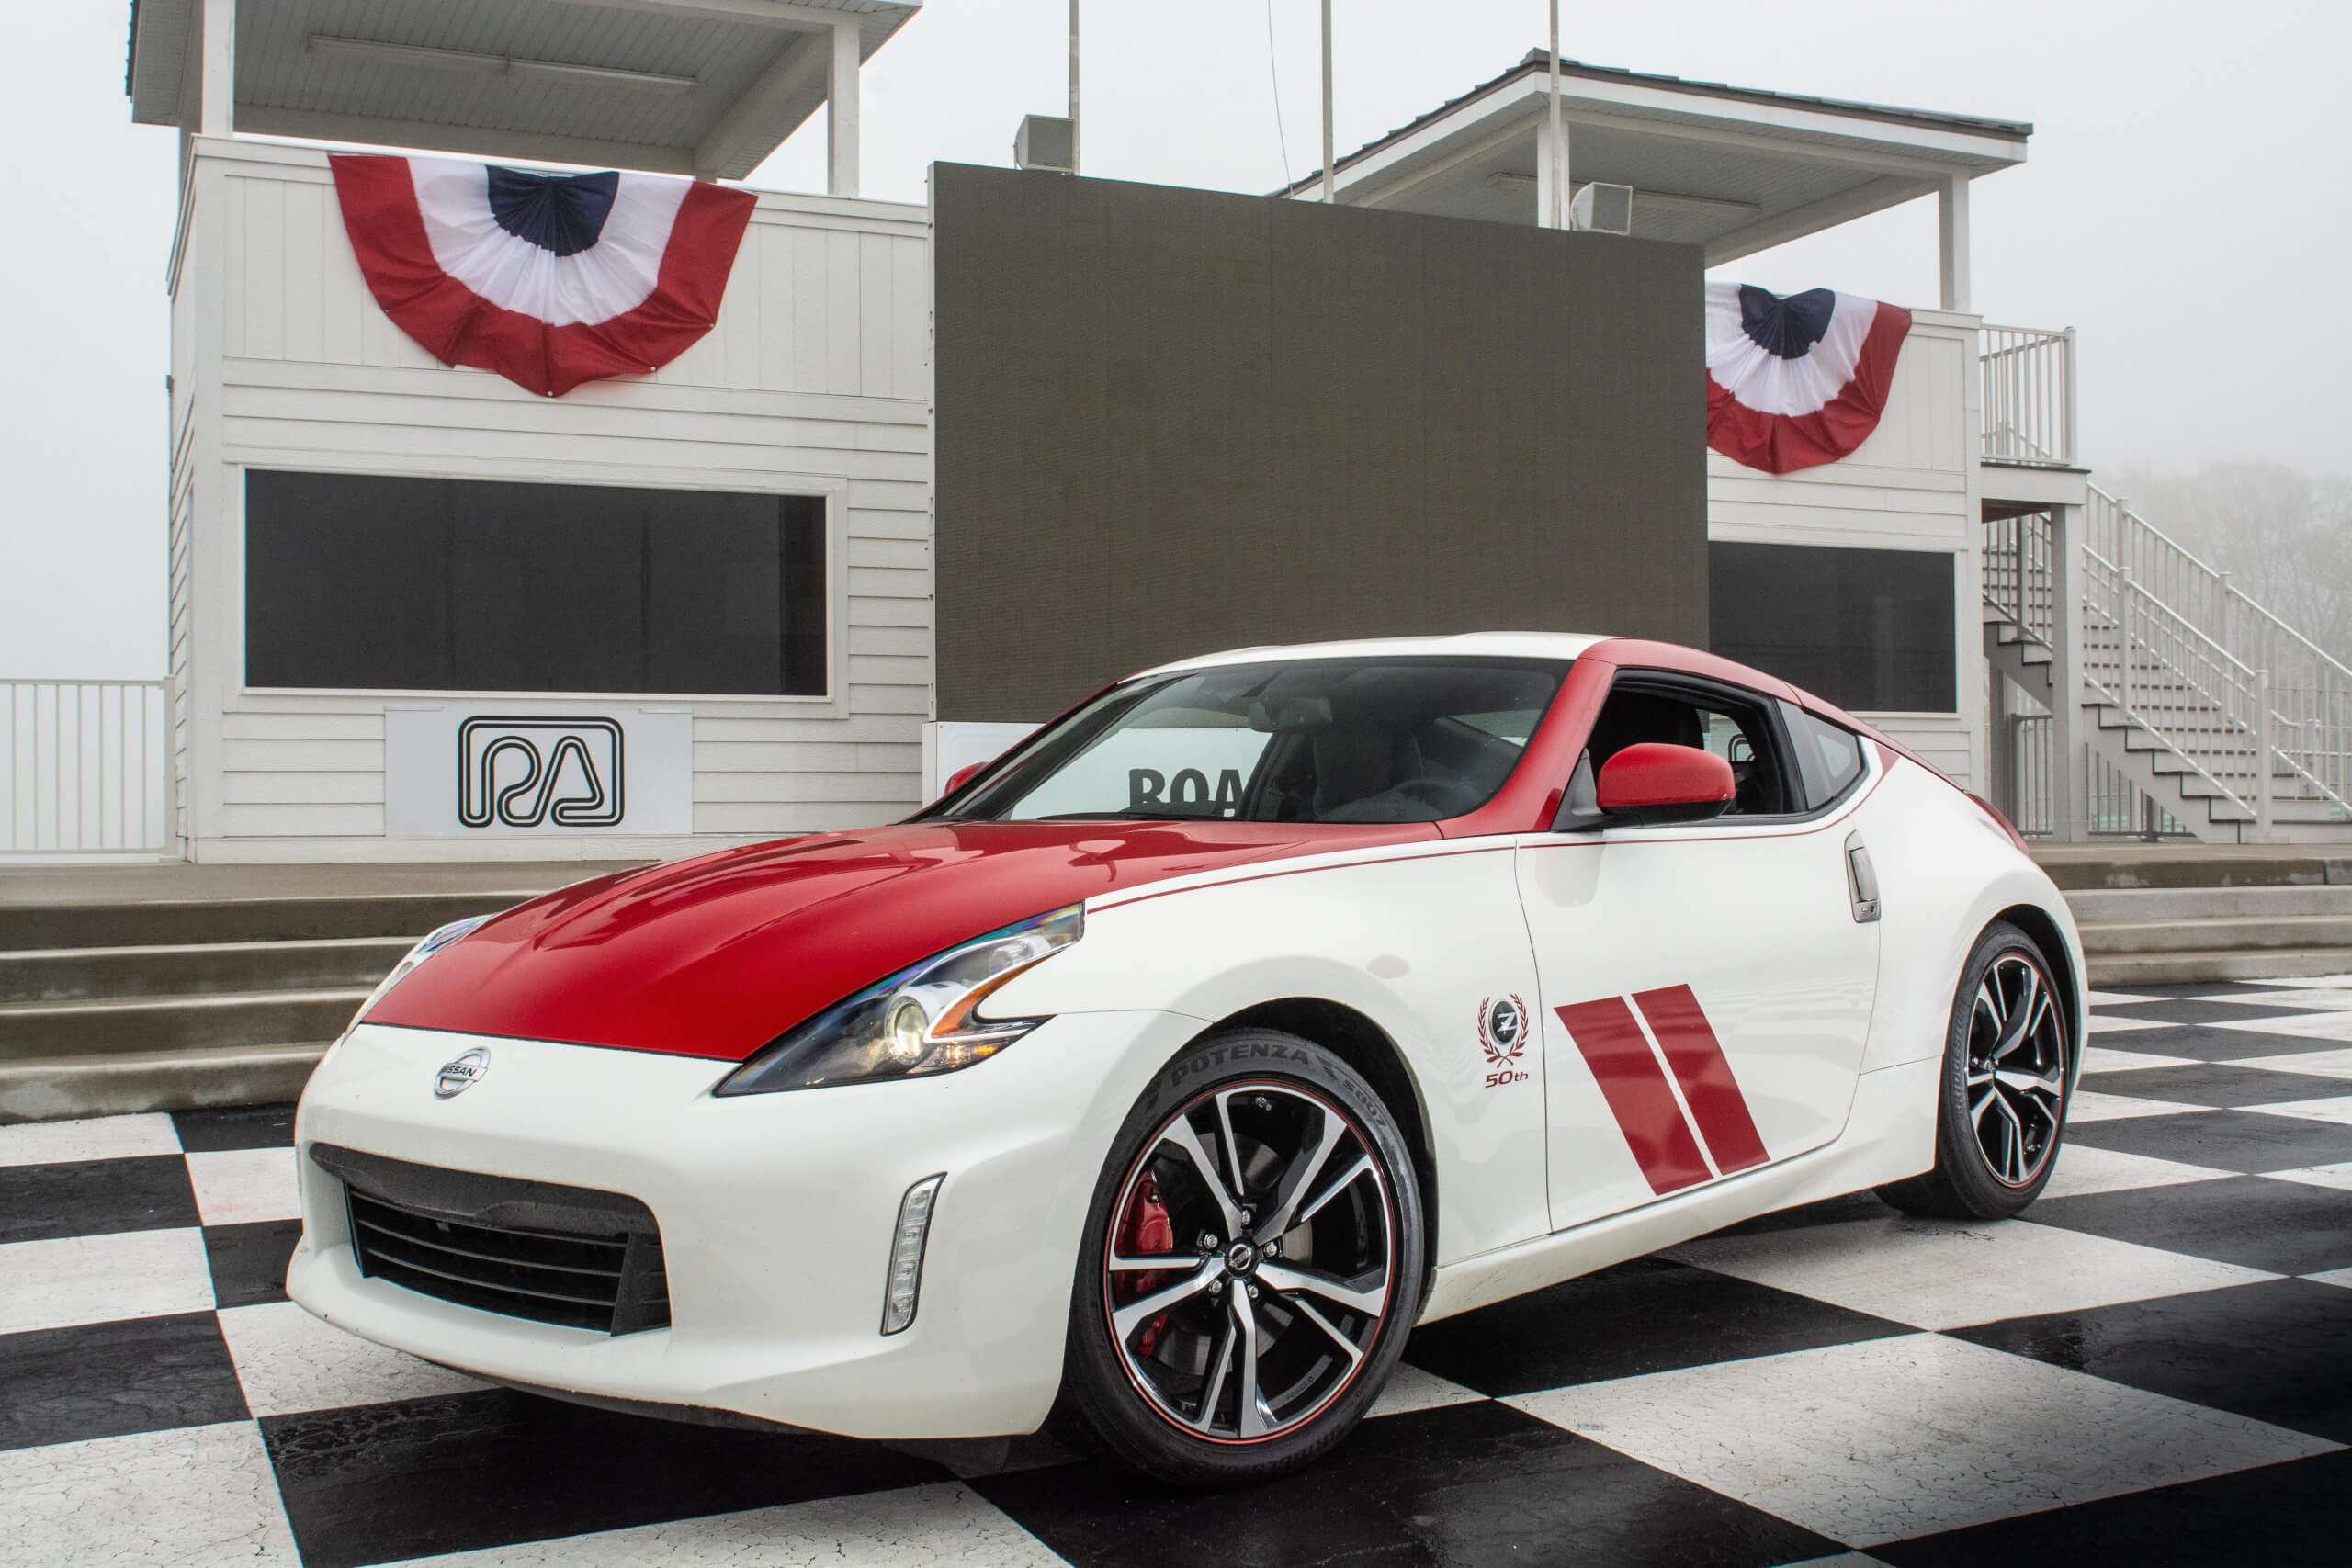 'A Car for True Collectors': 5 Facts about the 2020 Nissan 370Z 50th Anniversary Edition